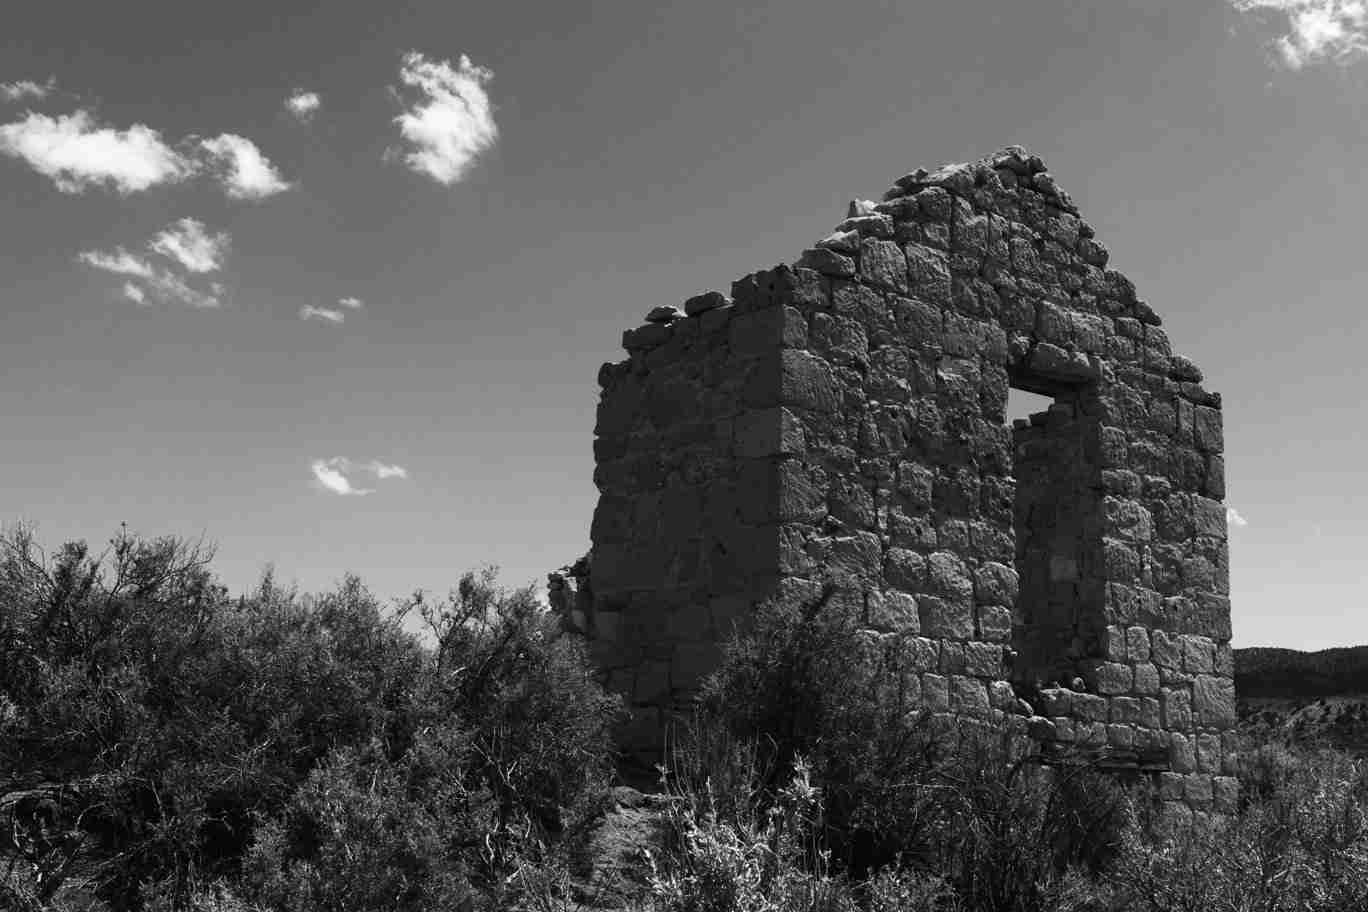 Print of an Abandoned Building in the Nevada Desert